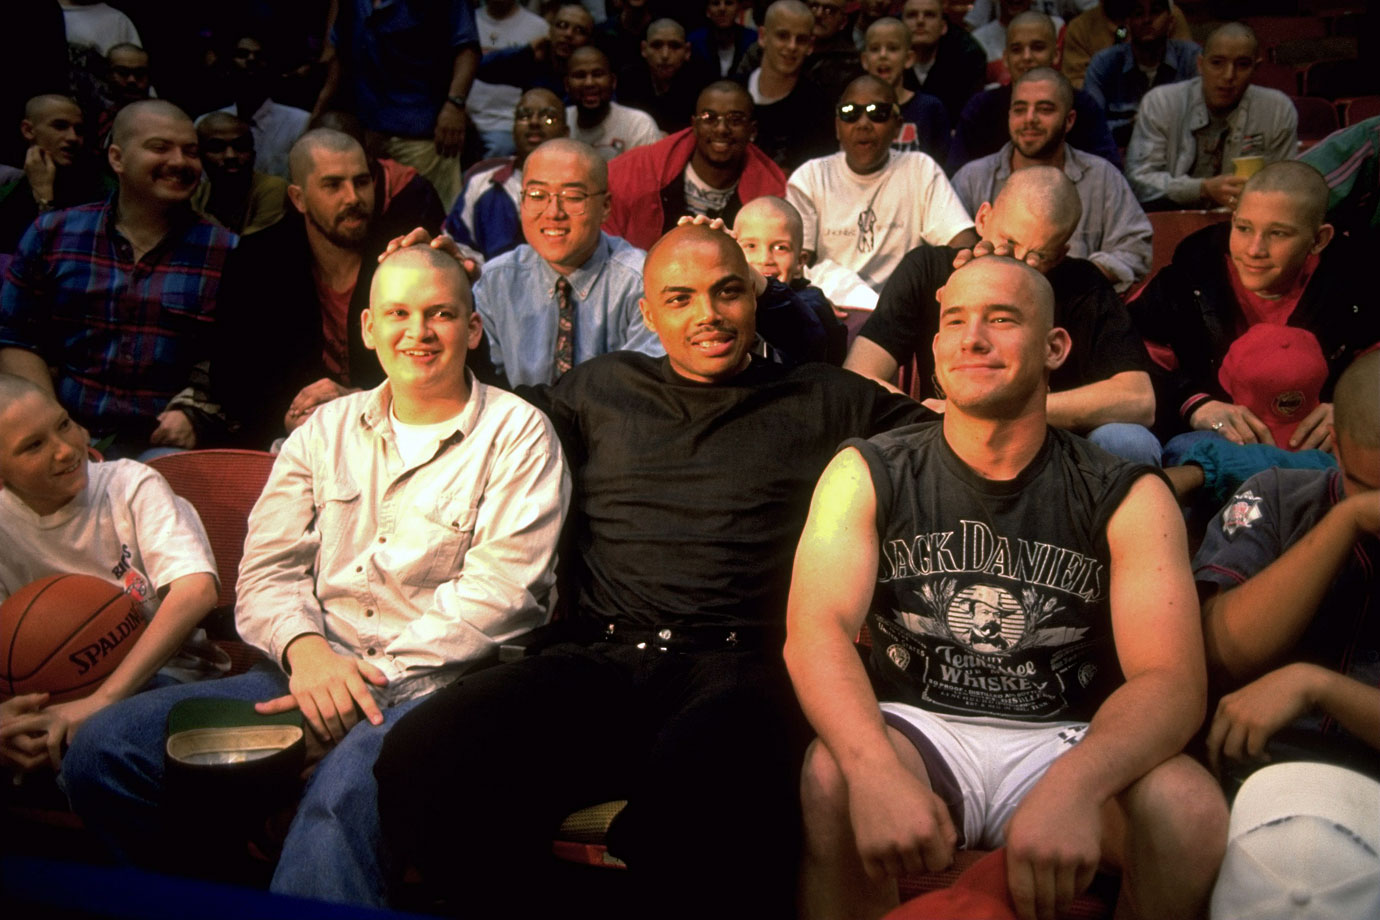 Charles Barkley has some fun with fans before a game against the Houston Rockets. He averaged 25.6 points and 12.2 rebounds per game during that season, his seventh of 11 straight All-Star seasons.